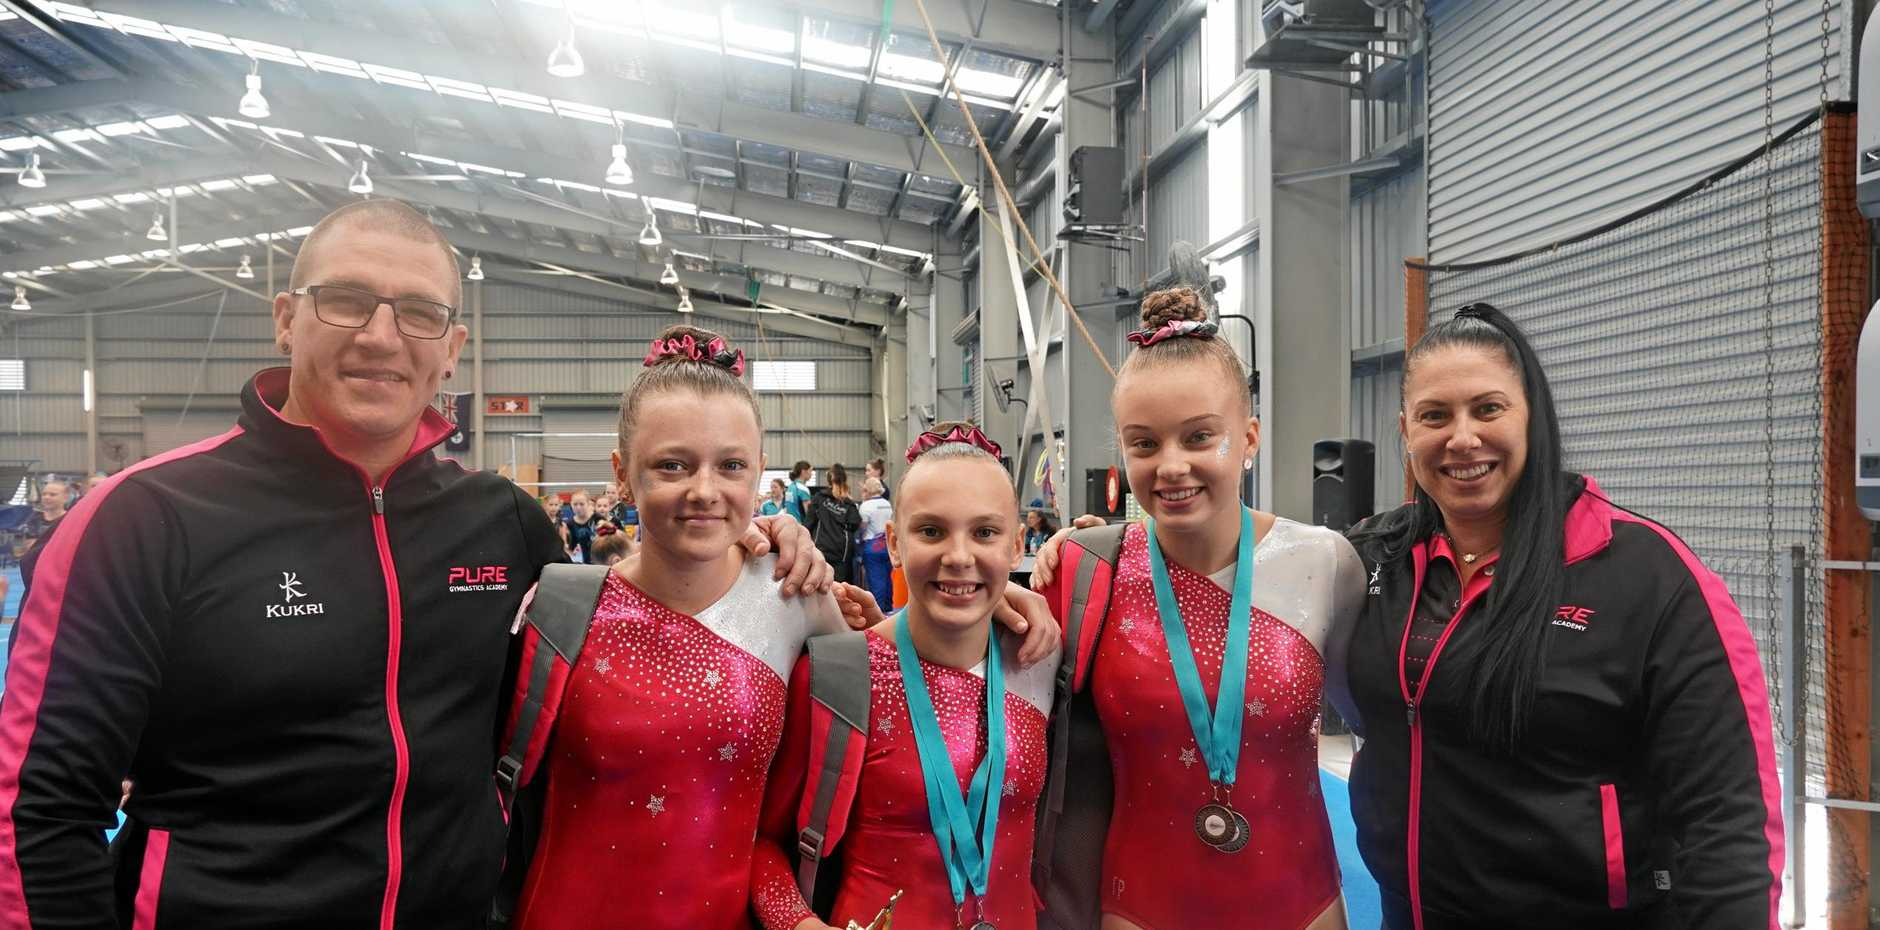 PURE SKILL: Brendan Day, Molly Ware, Anthea Campbell, Imogen Boucher and Vicki Baptie from Pure Gymnastics.